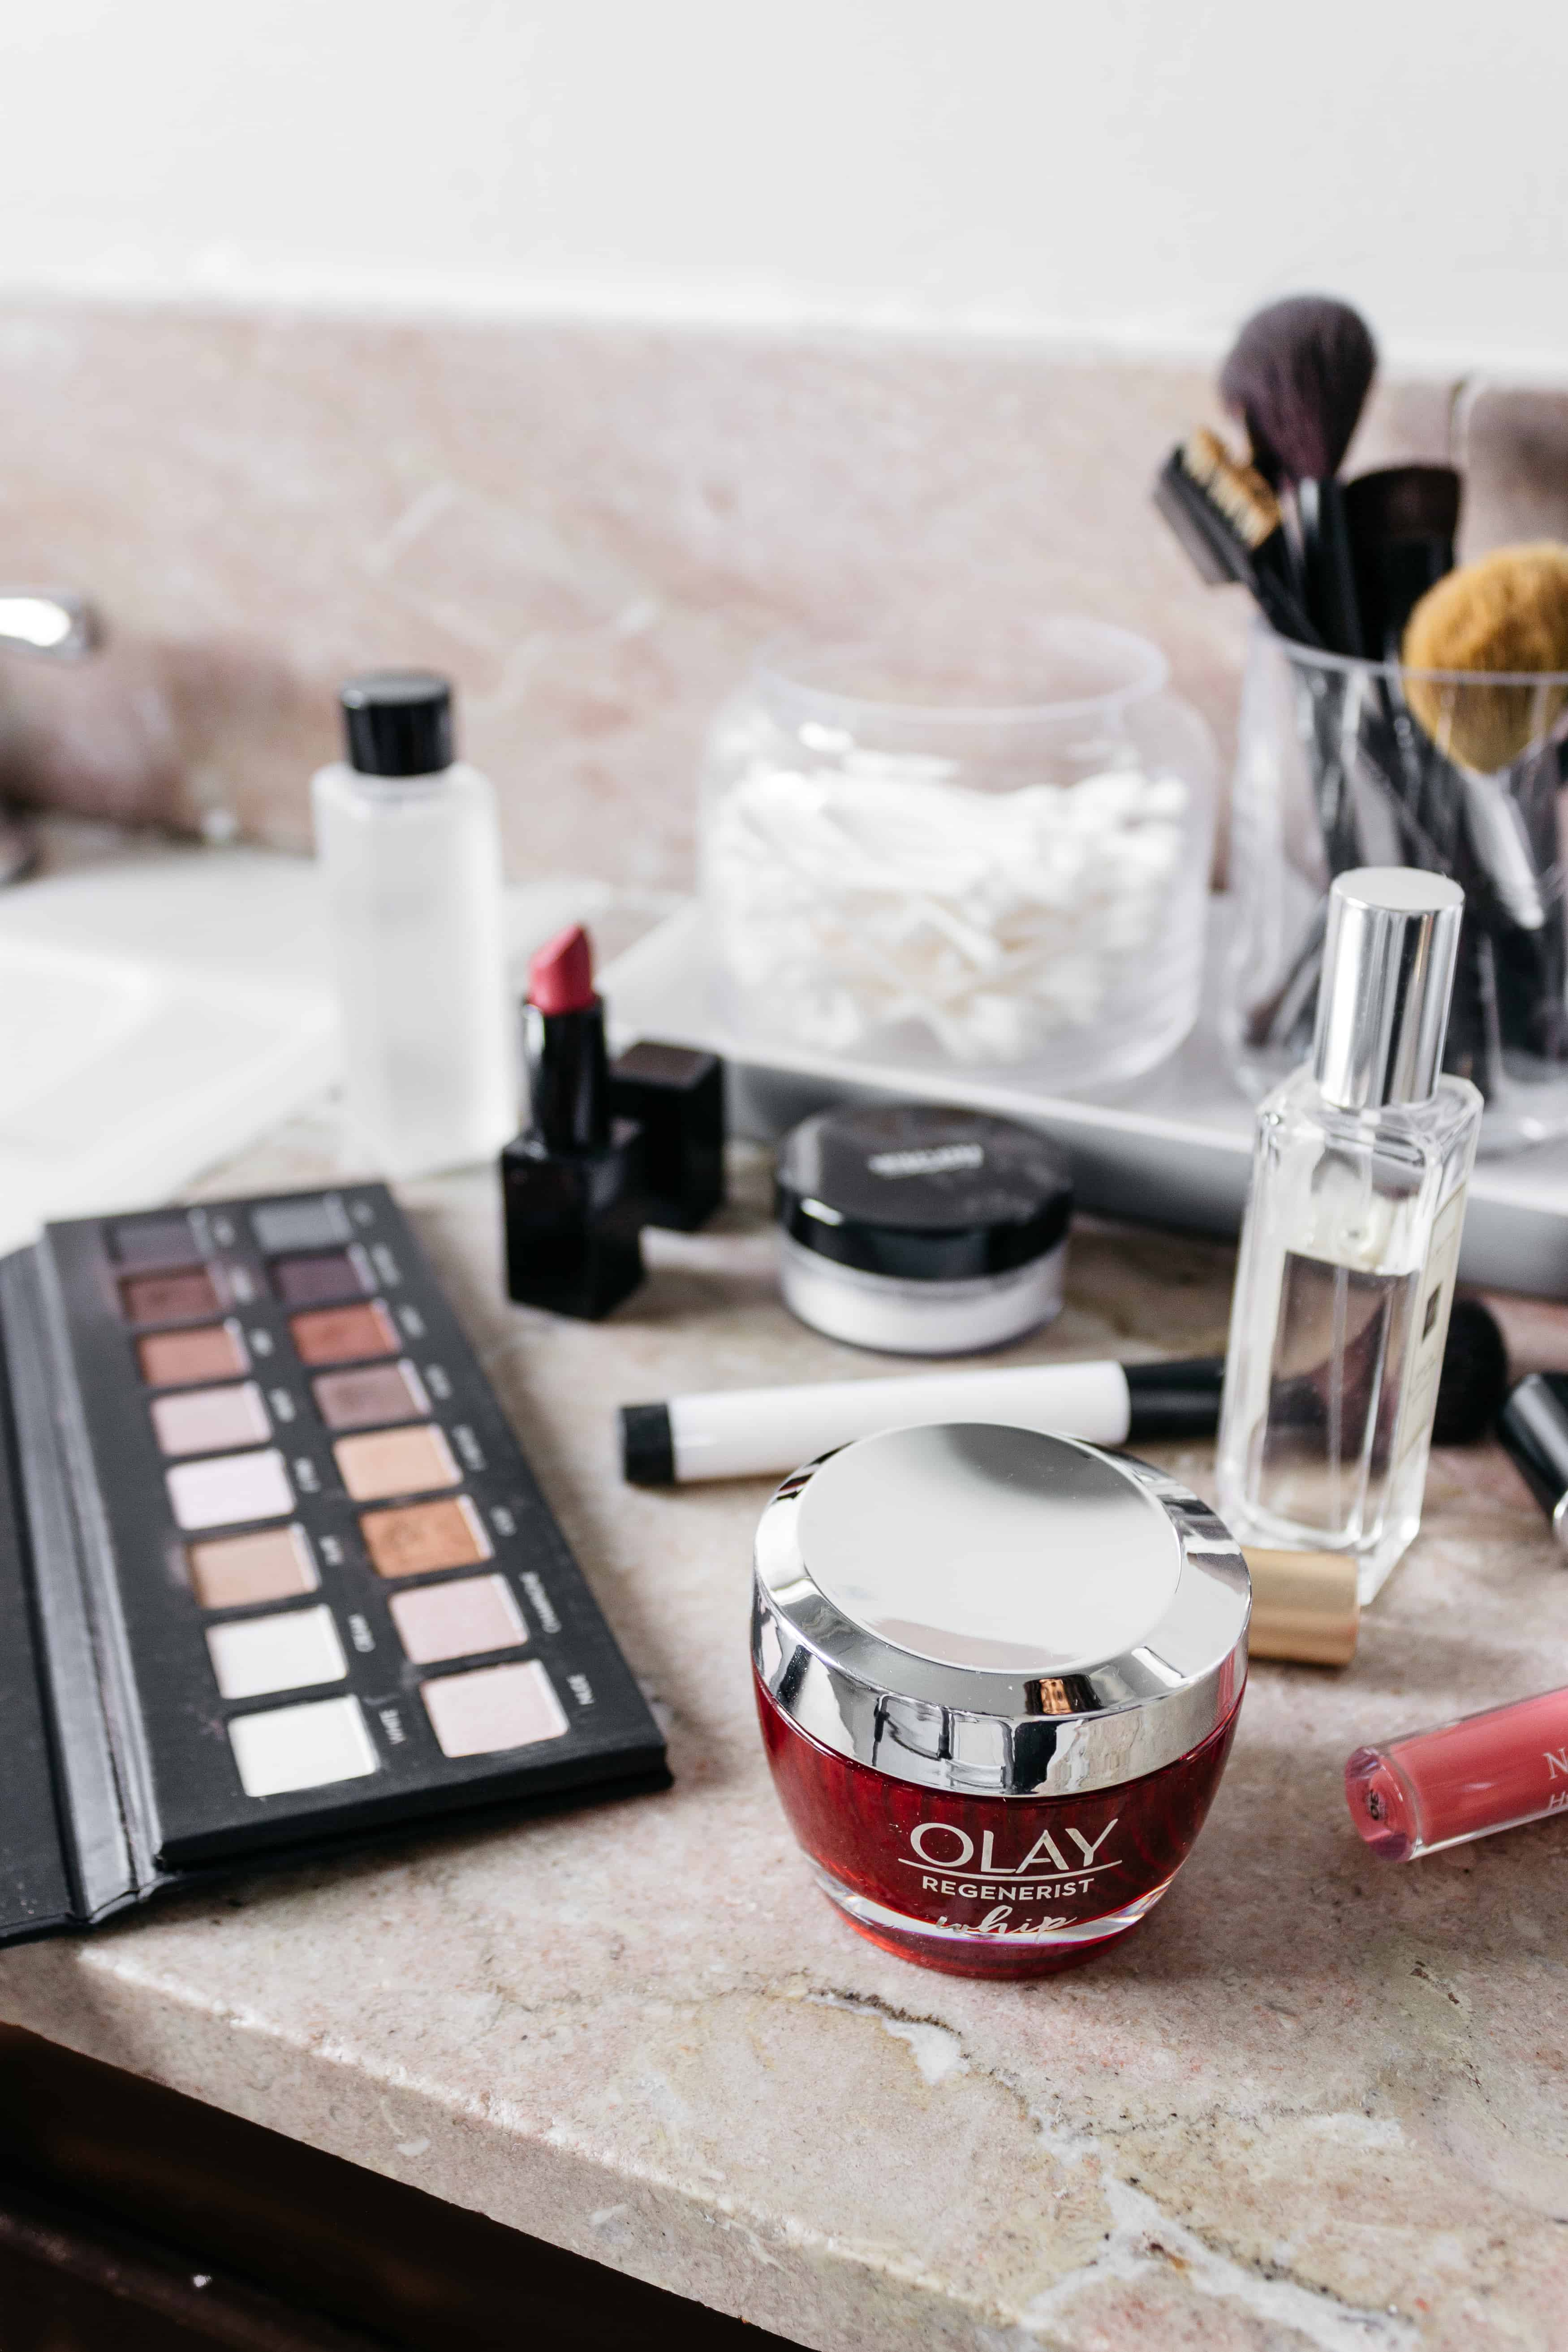 The Perfect Moisturizer to Add to Your Daily Makeup Routine